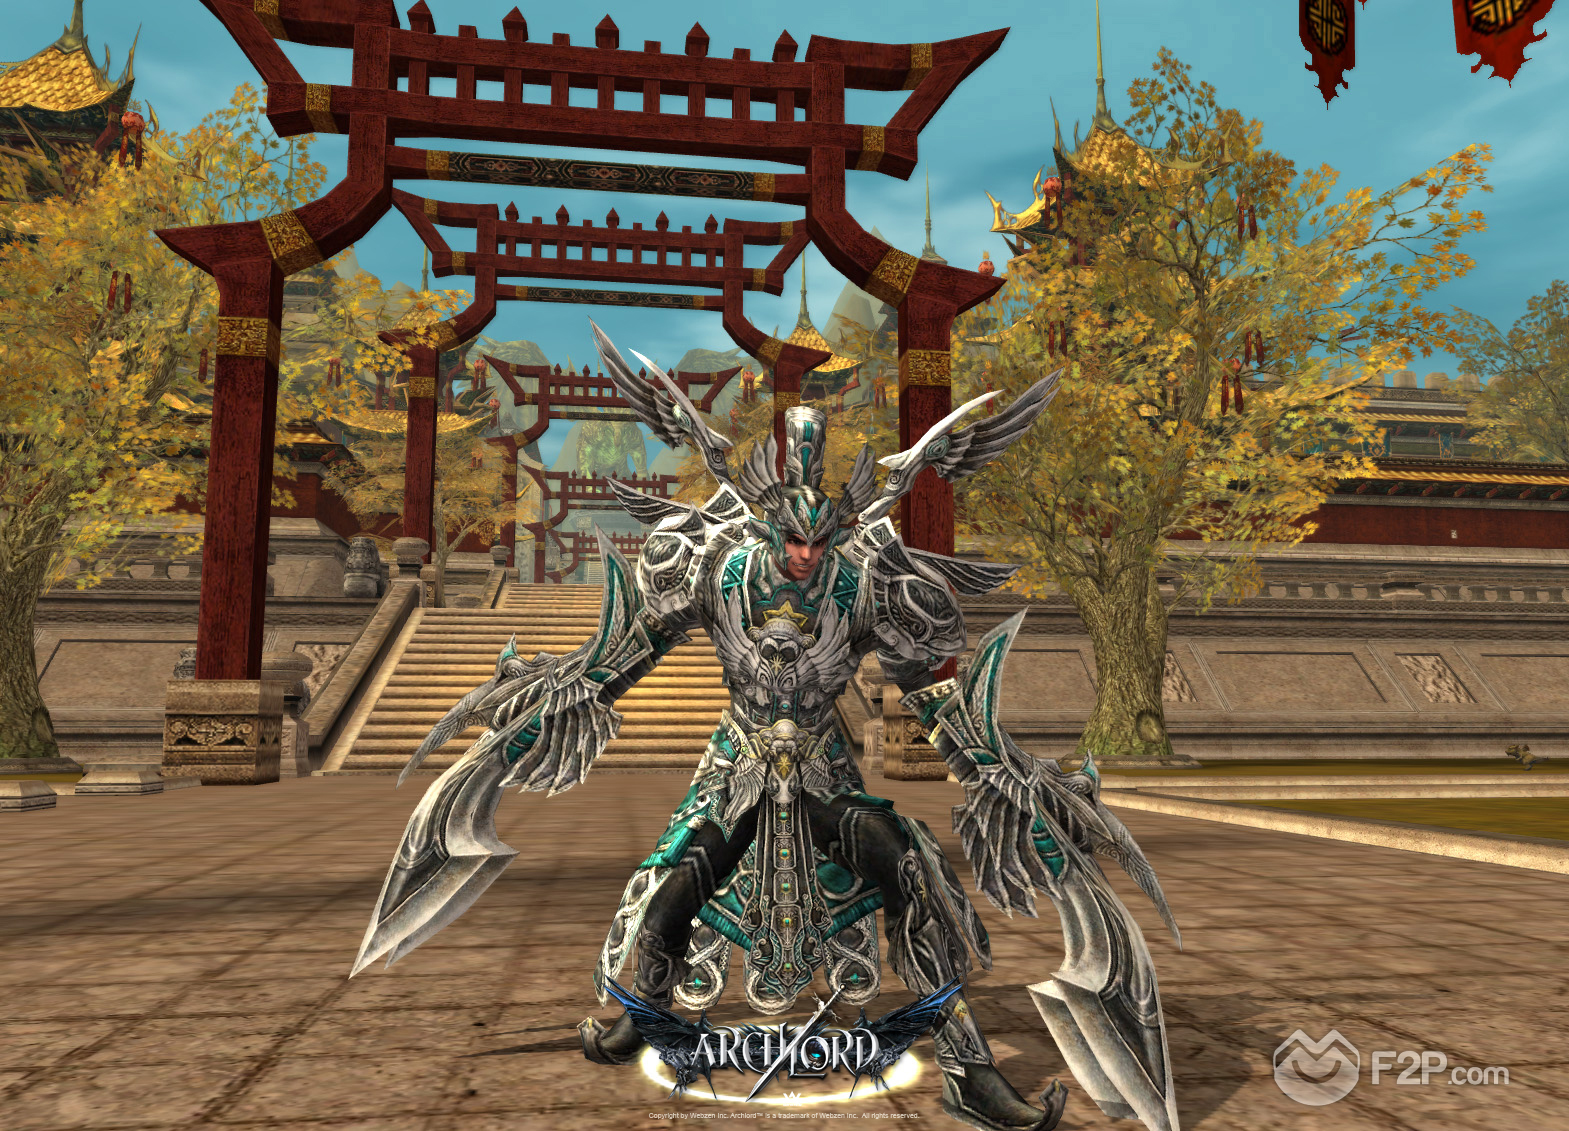 Click image for larger version.Name:Archlord 2.jpgViews:159Size:1.20 MBID:2886